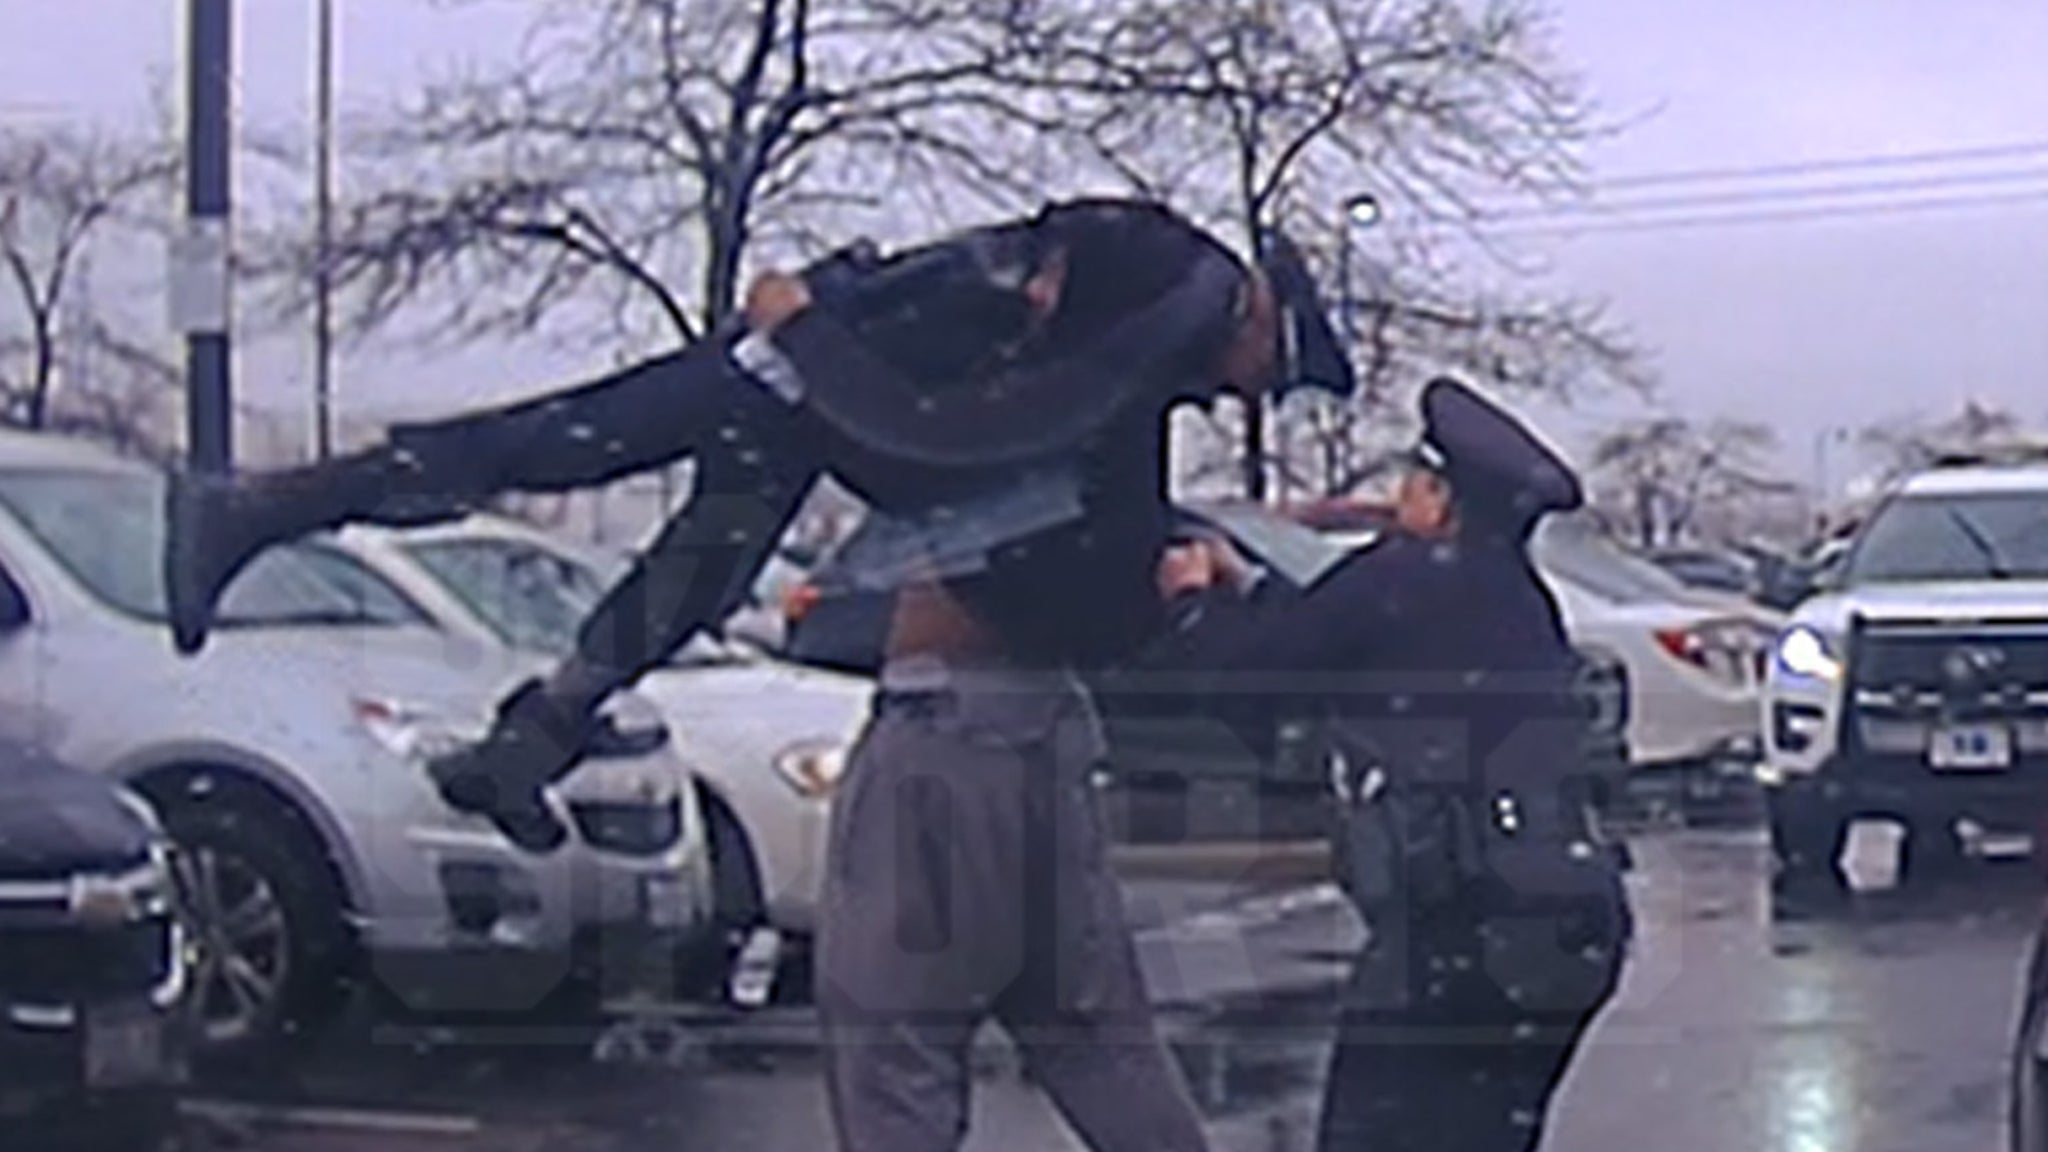 College Football Player Bodyslams Cop During Arrest, Insane Police Video